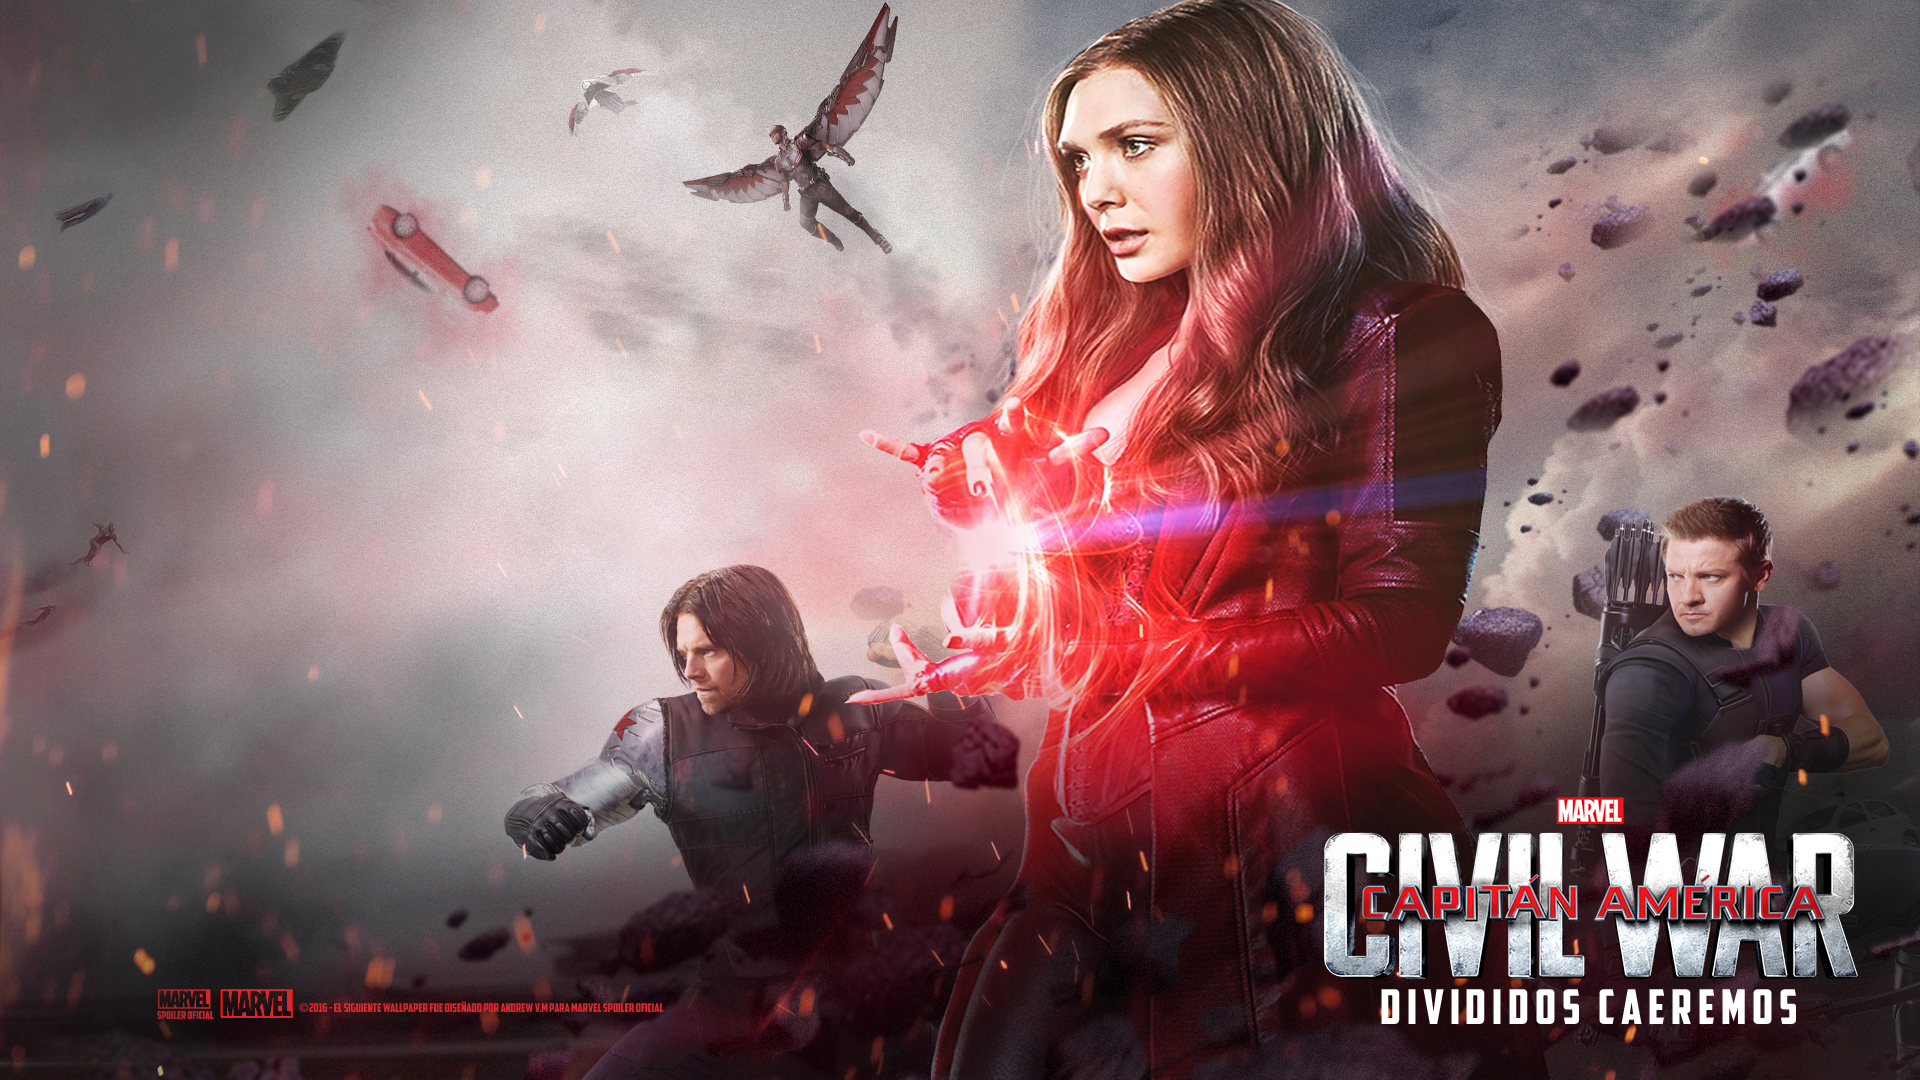 Capitan America CIVIL WAR Scarlet Witch HD Wallp By Andrewvm